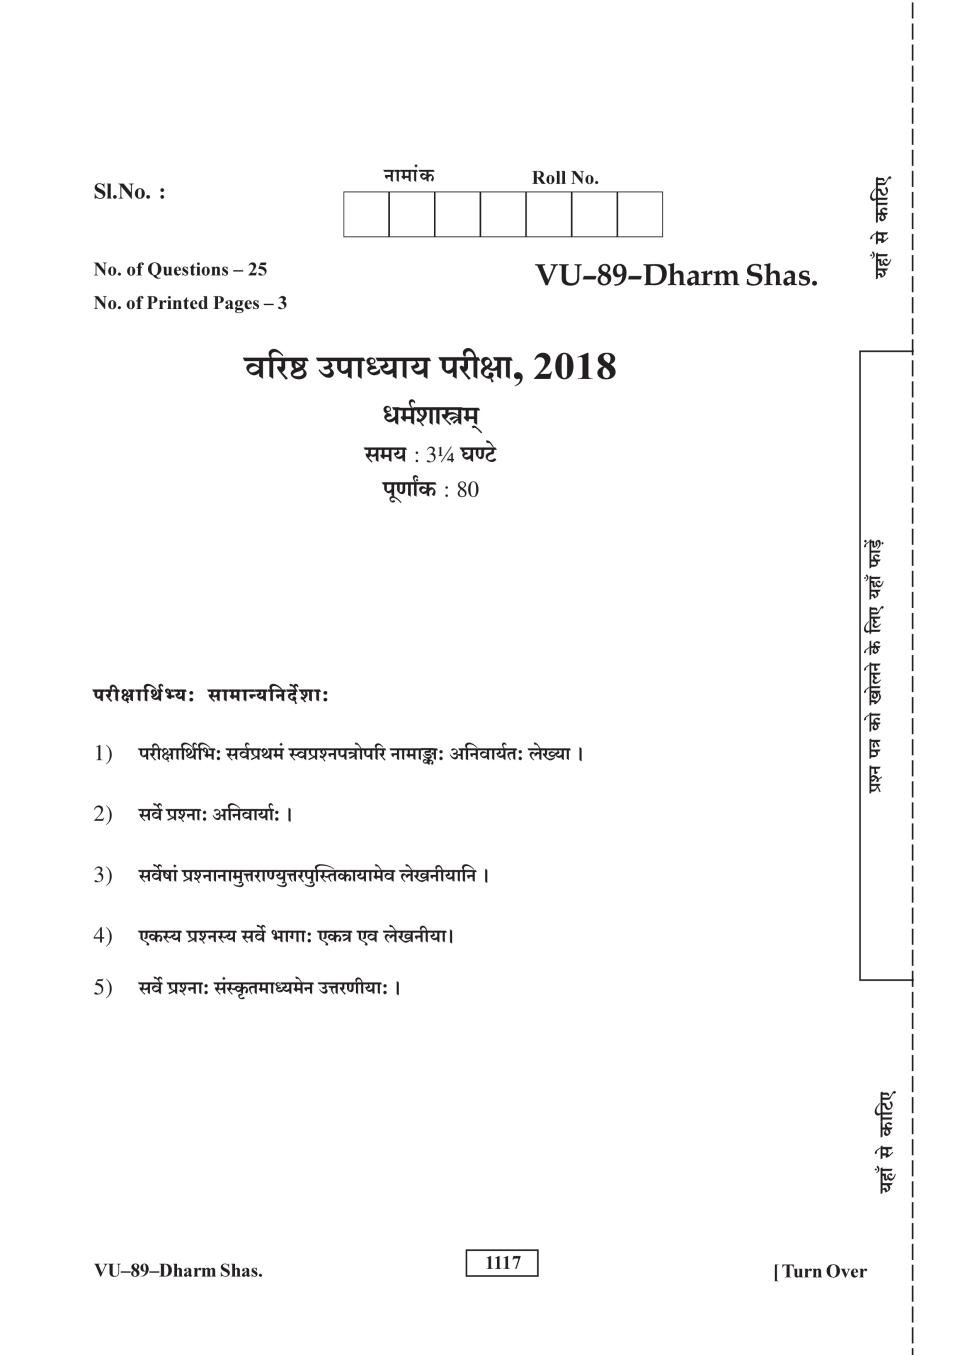 Rajasthan Board V Upadhyay Dharma Shastram Question Paper 2018 - Page 1